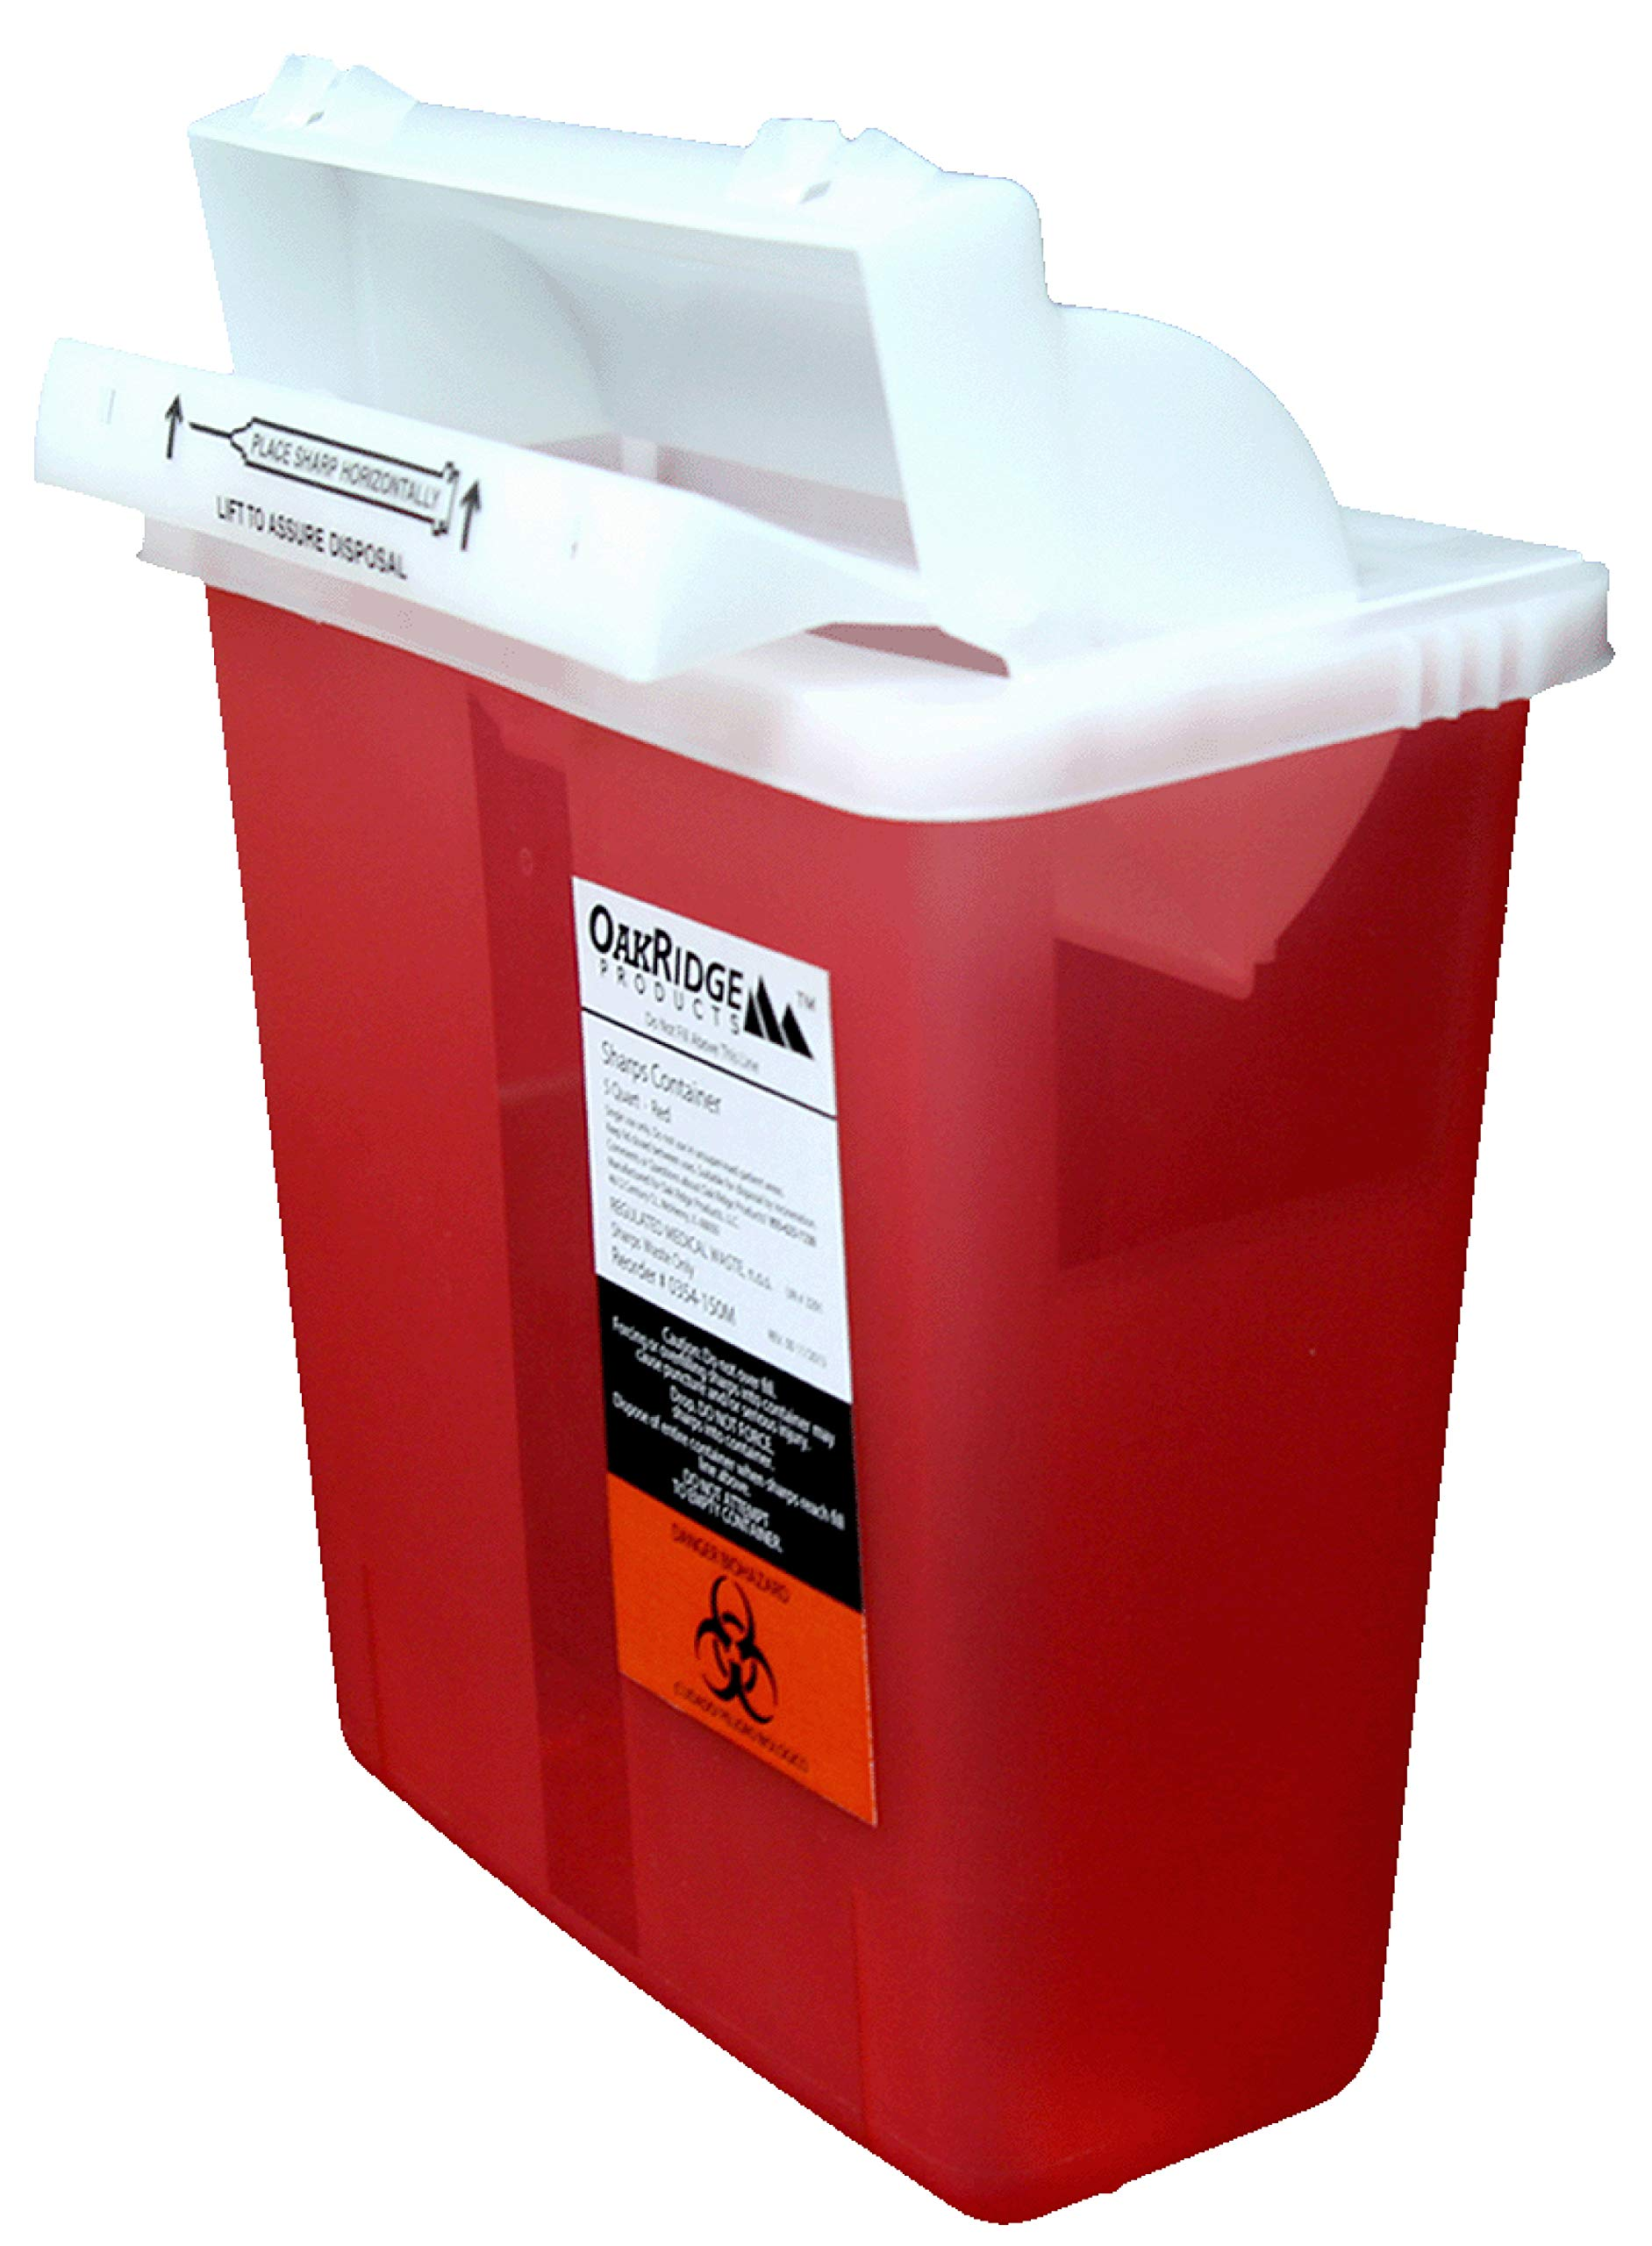 5 Quart Sharps Container (2 Pack) from OakRidge Products | Mailbox-style Lid |  Certified by OakRidge Products